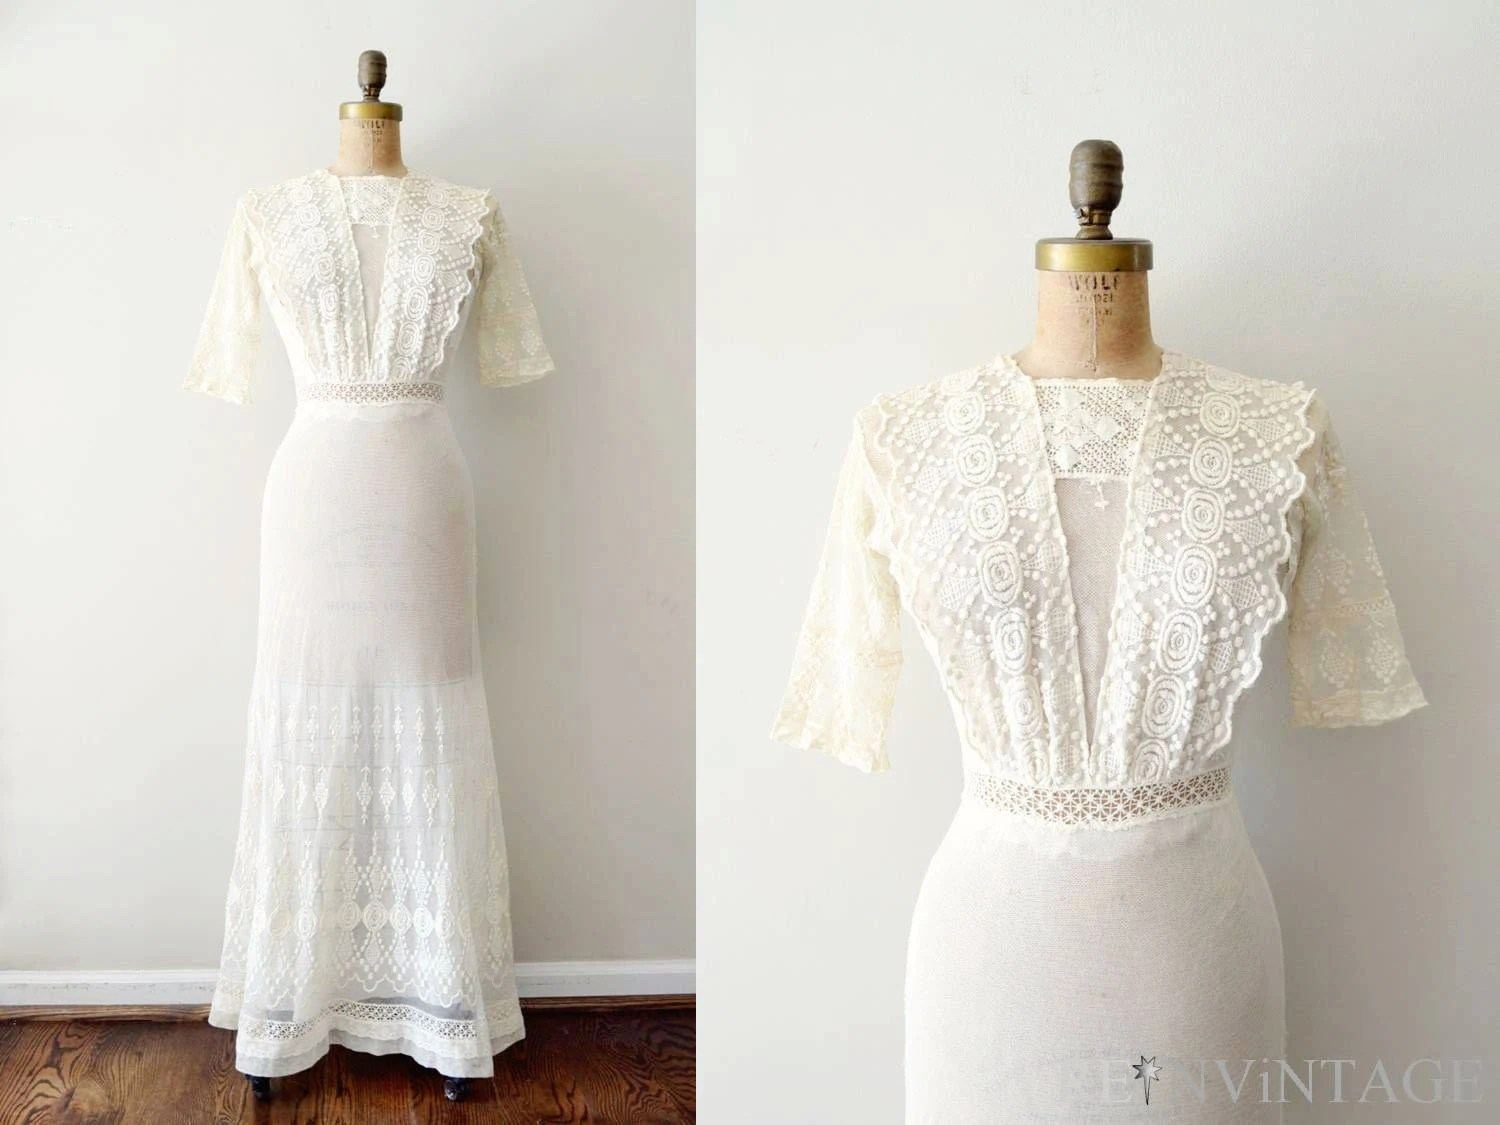 Vintage 1910s Dress Edwardian Wedding Dress / Antique Ivory